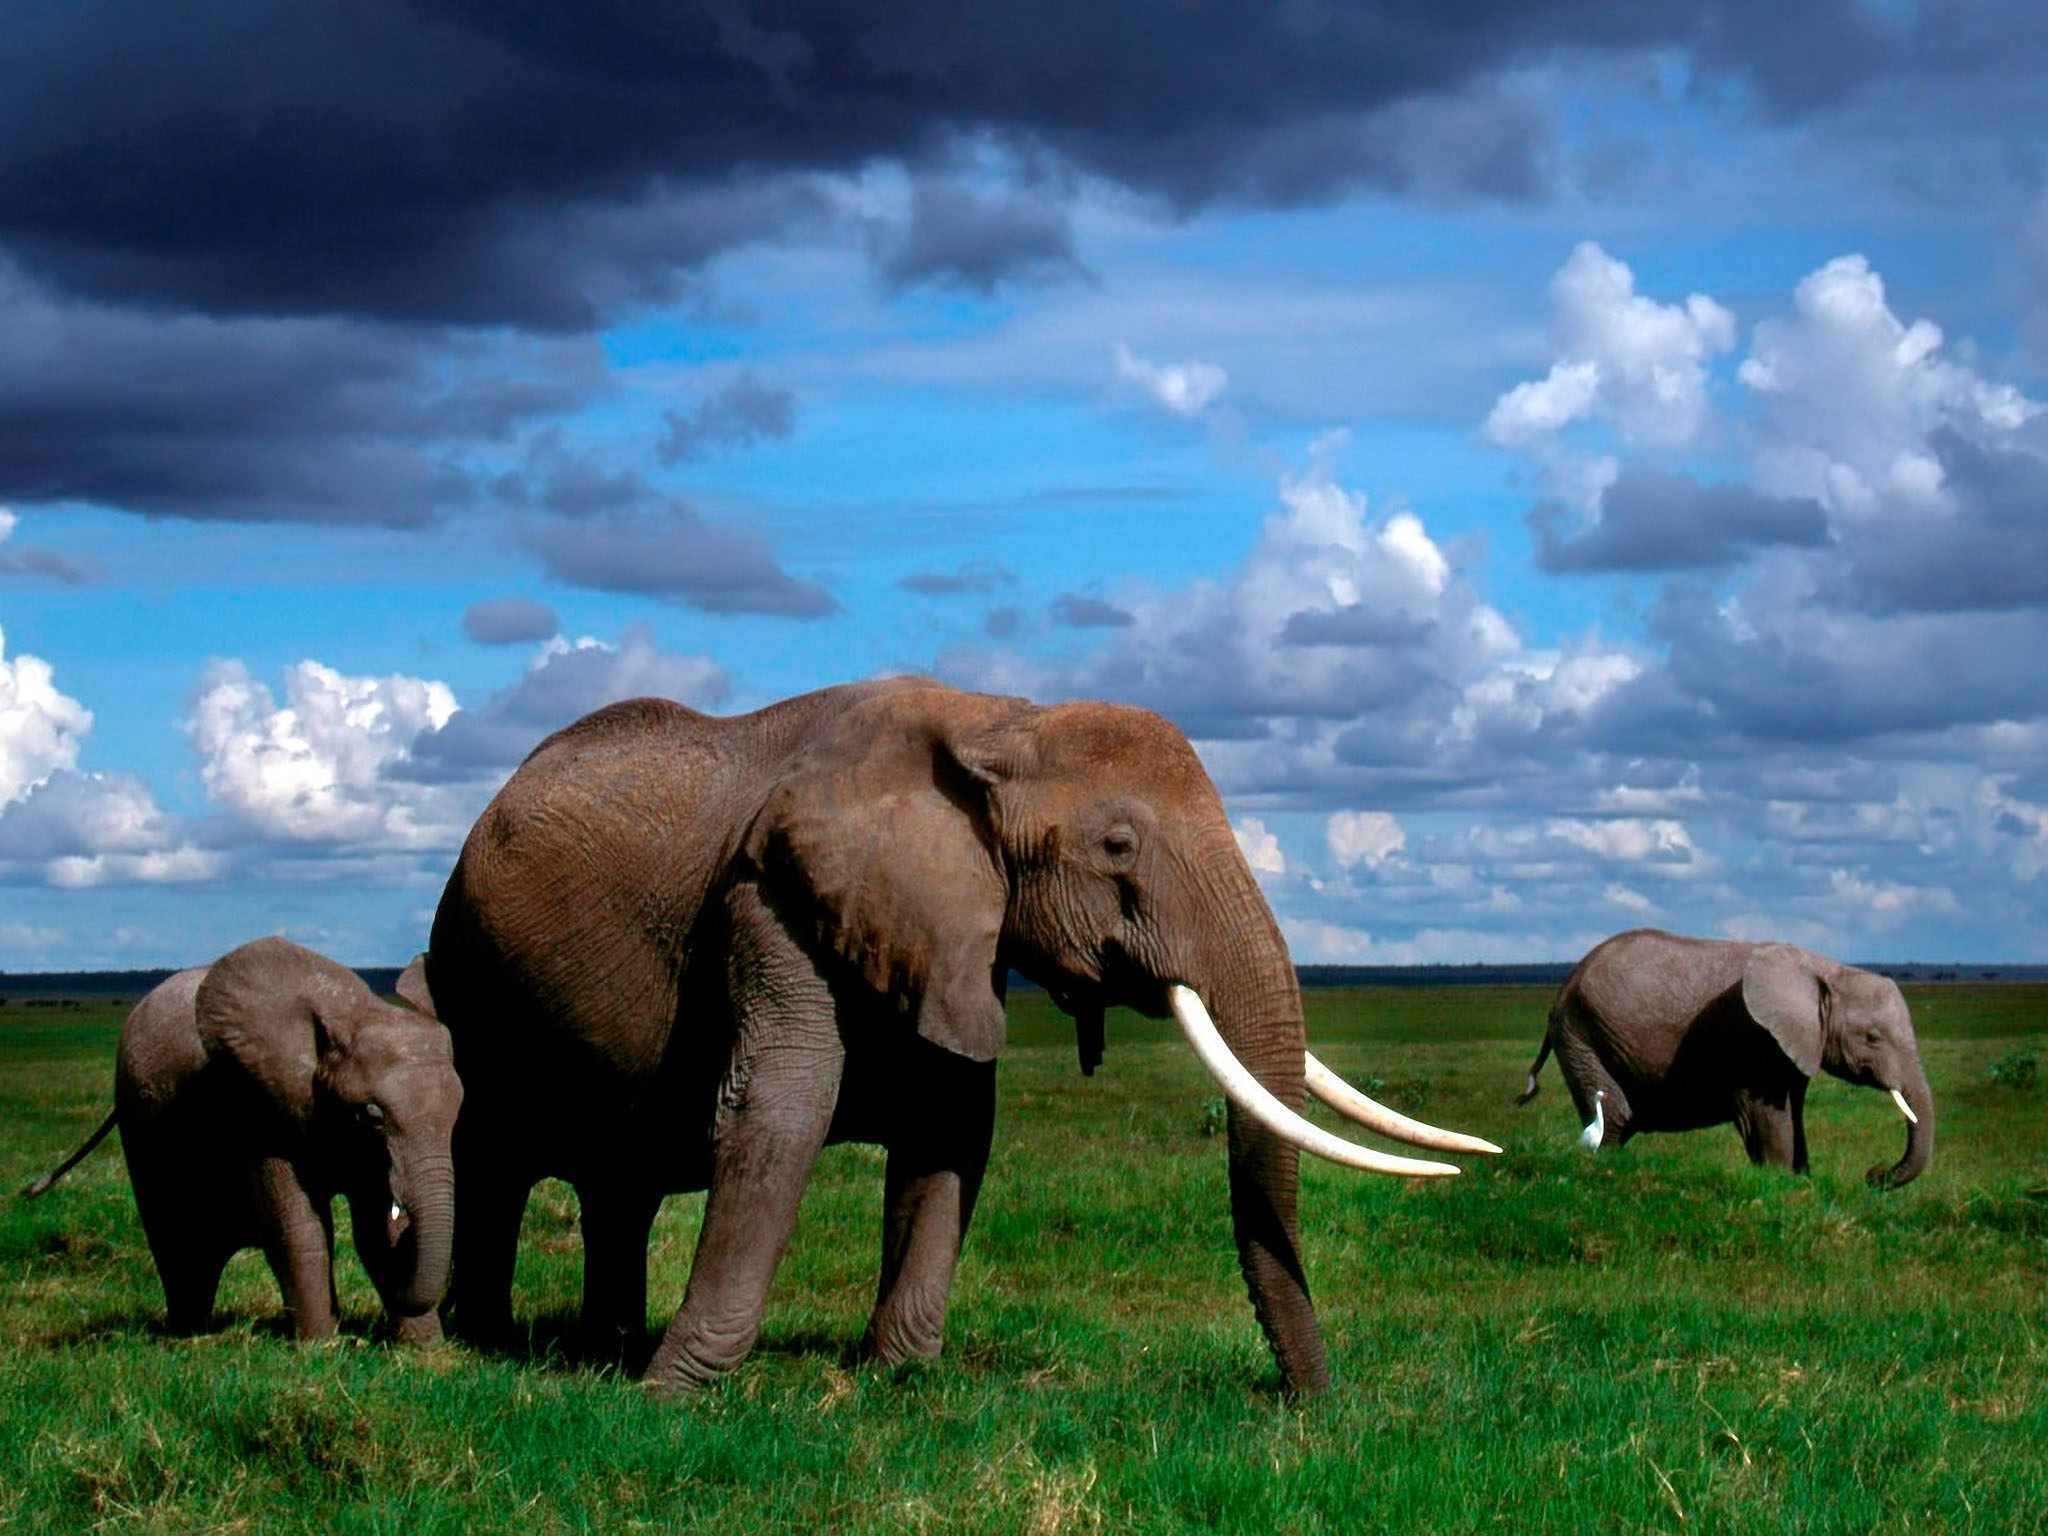 10 Best Hd Elephant Wallpapers Freecreatives